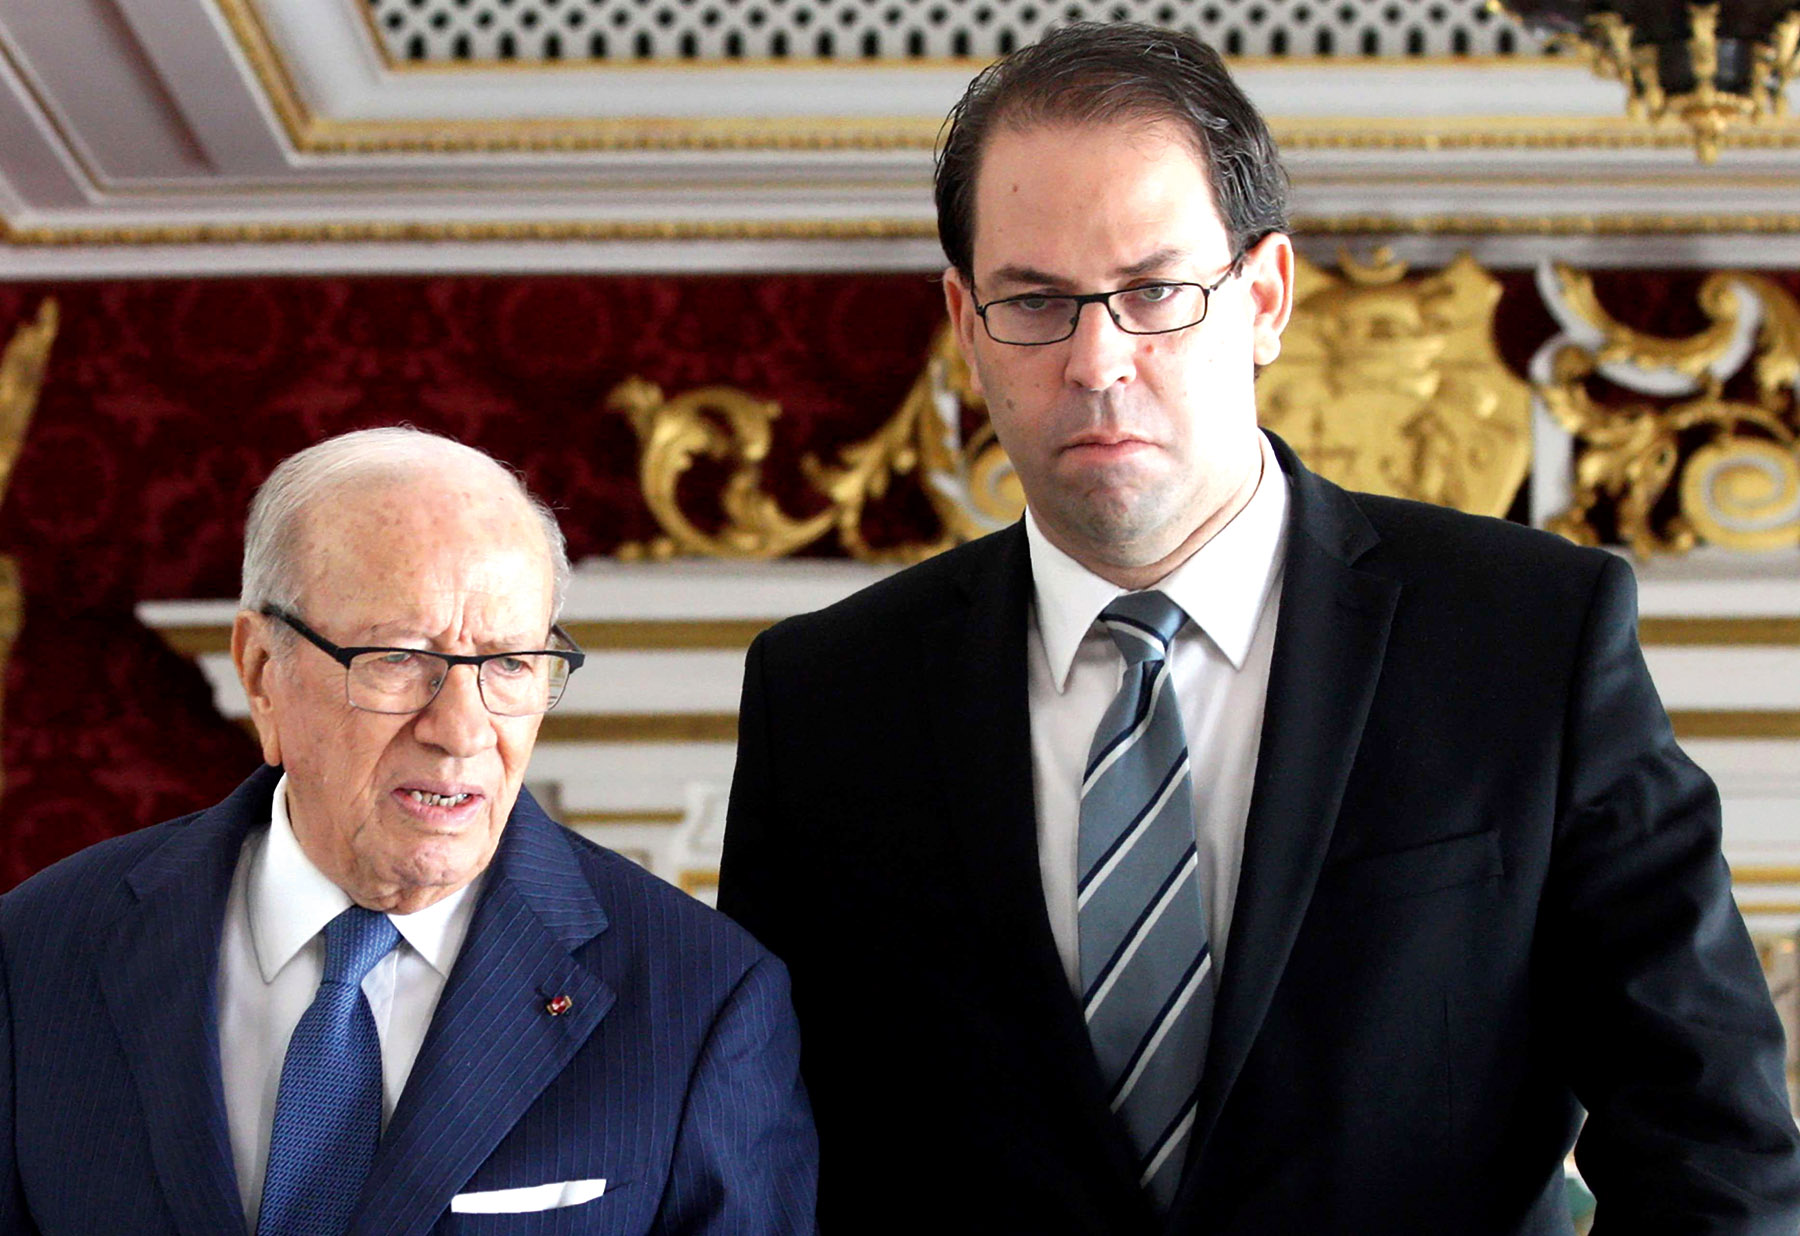 A file picture shows Tunisian Prime Minister Youssef Chahed (R) and Tunisian President Beji Caid Essebsi arriving for a cabinet meeting in Carthage Palace.                        (AFP)